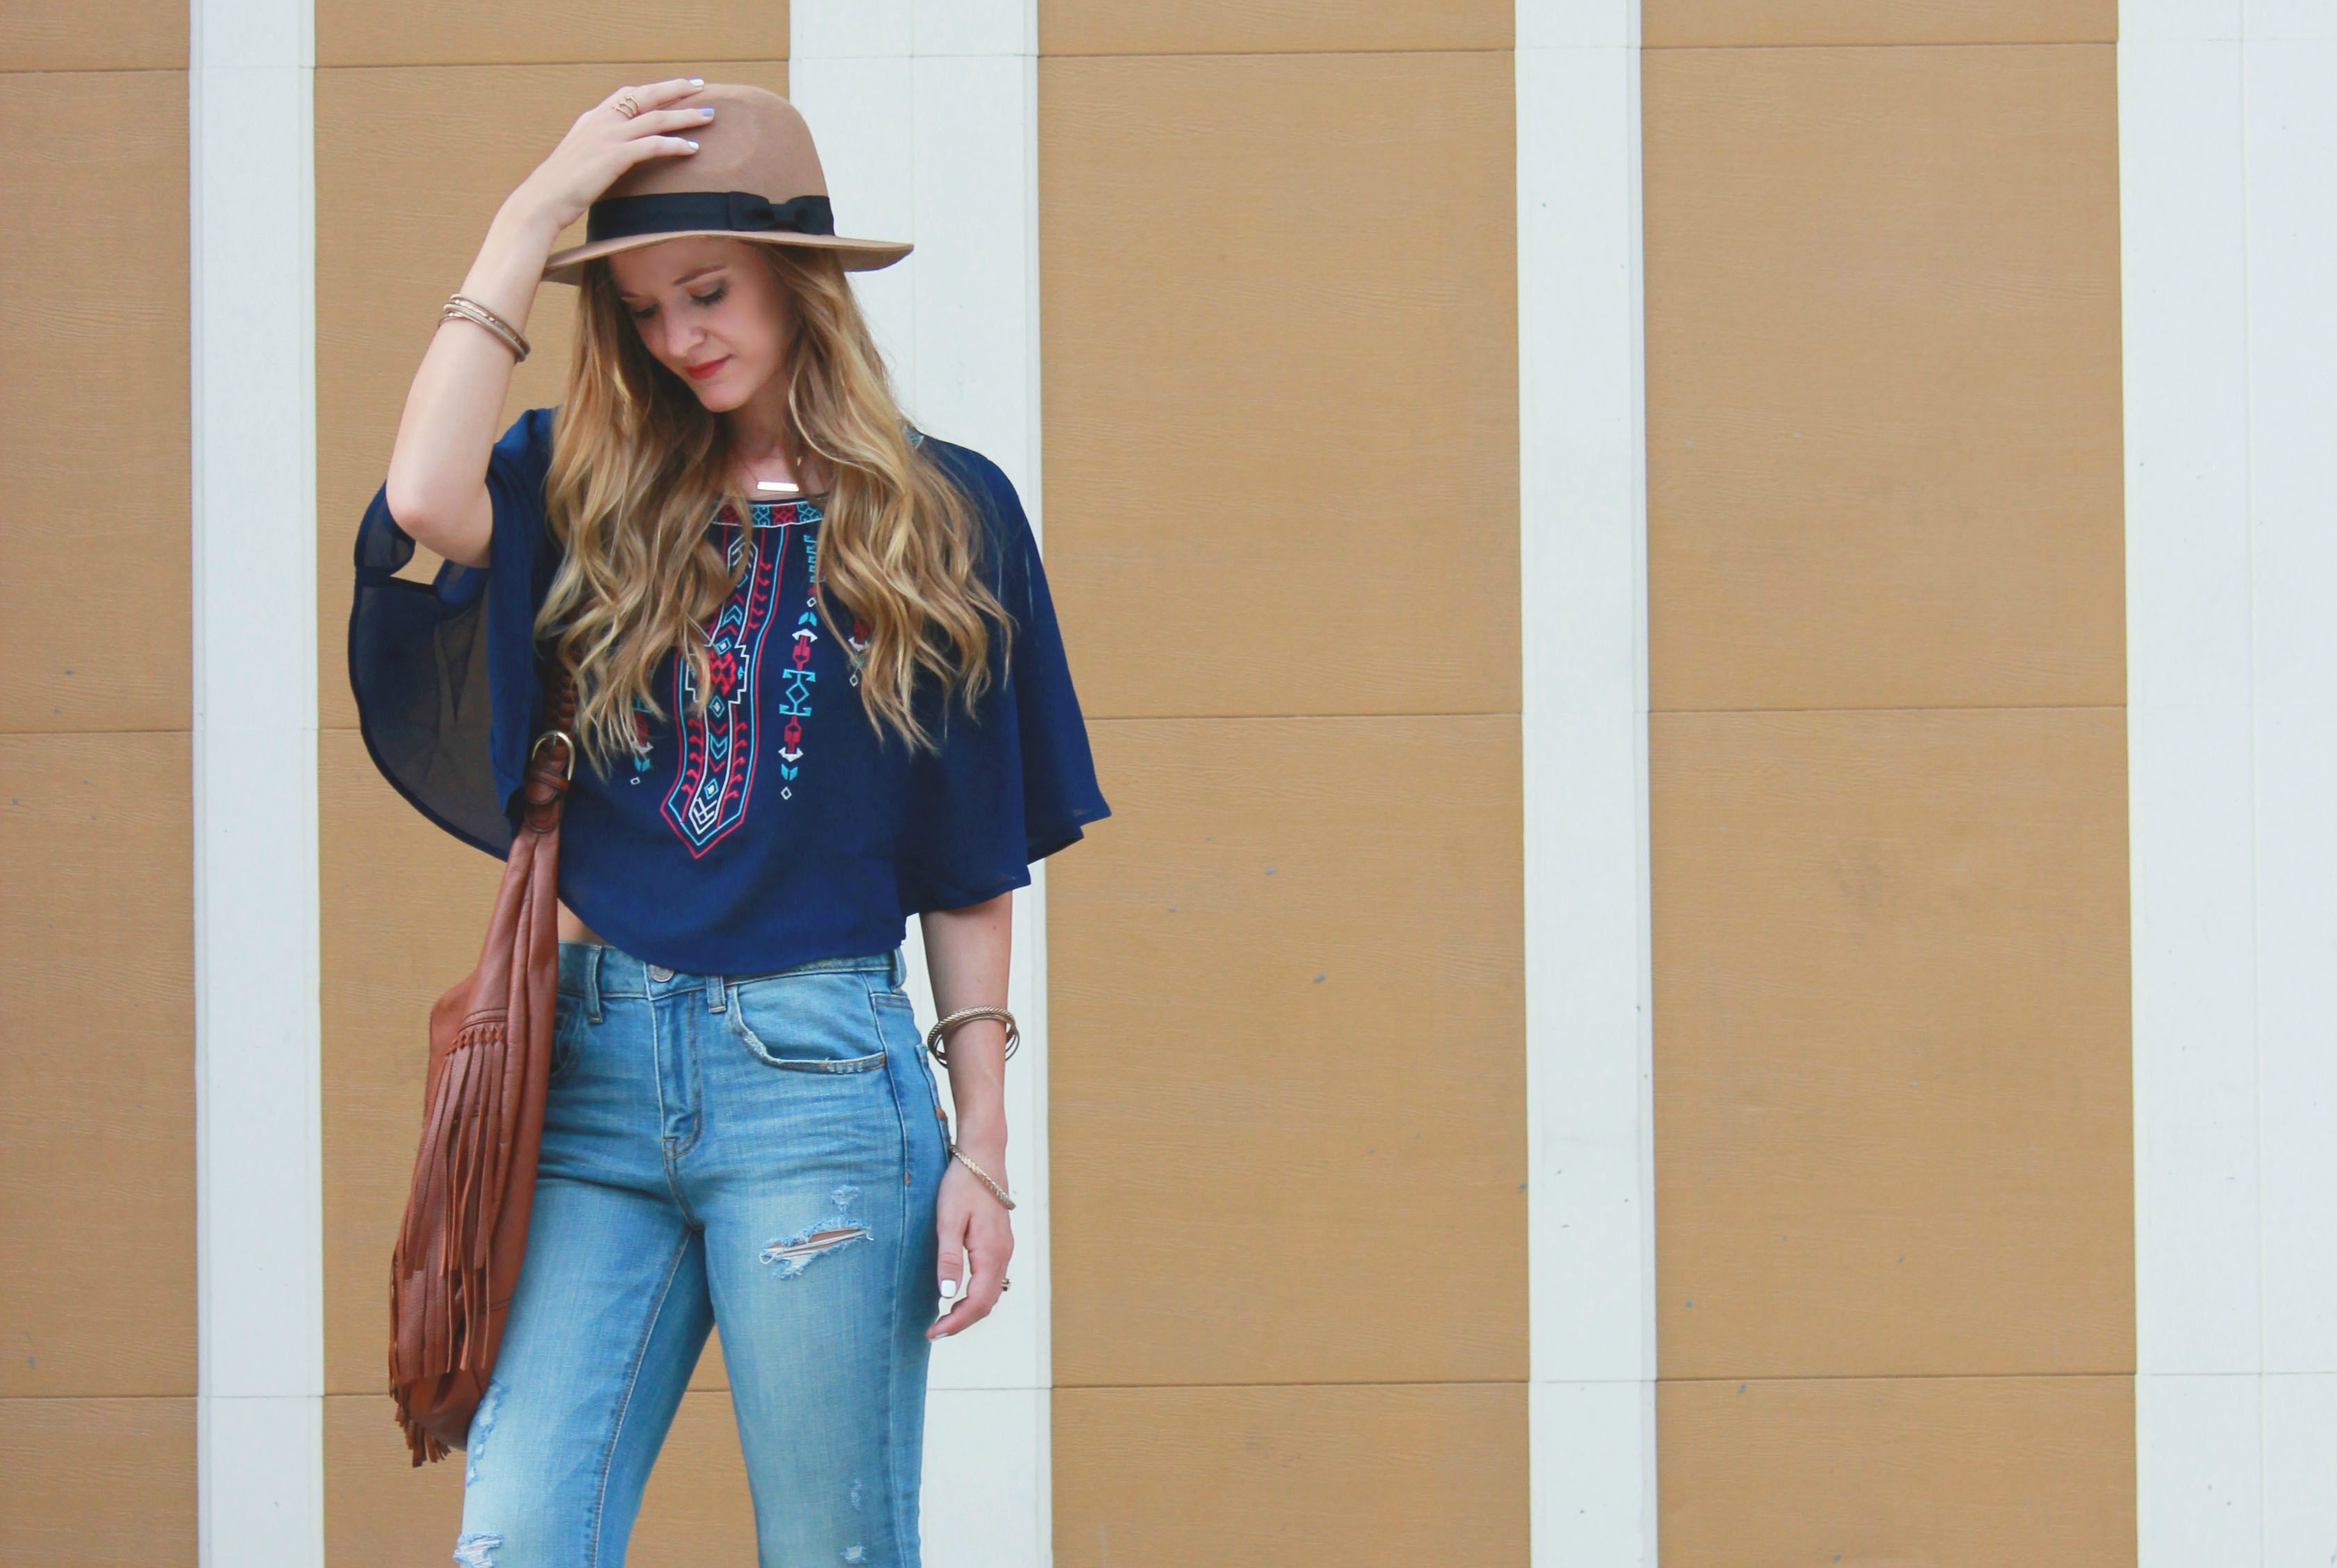 bleue boutique crop top, american eagle jeans, flared jeans, fringe bag, layered and long necklaces, boho chic, boho outfit, 70s outfit, 70s inspired